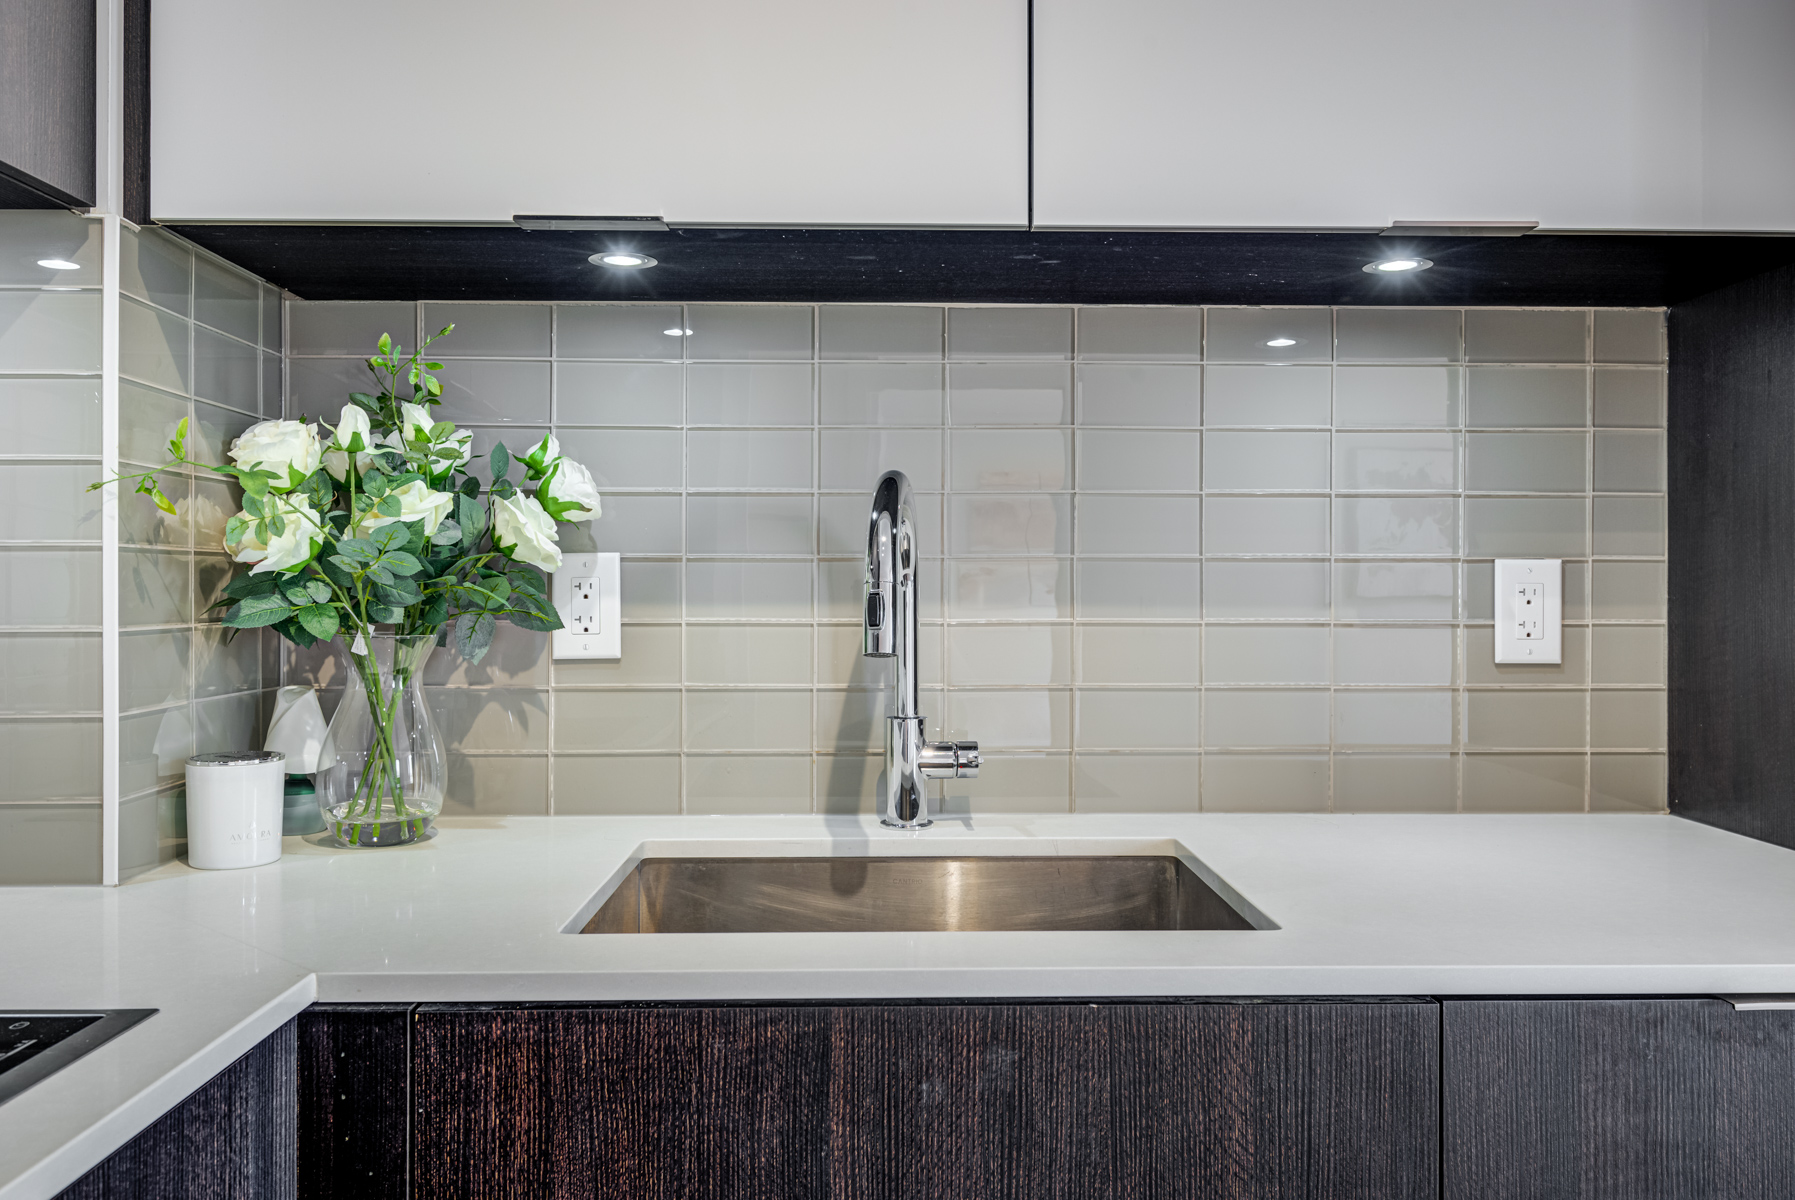 Newly renovated condo kitchen as one way to increase property value.